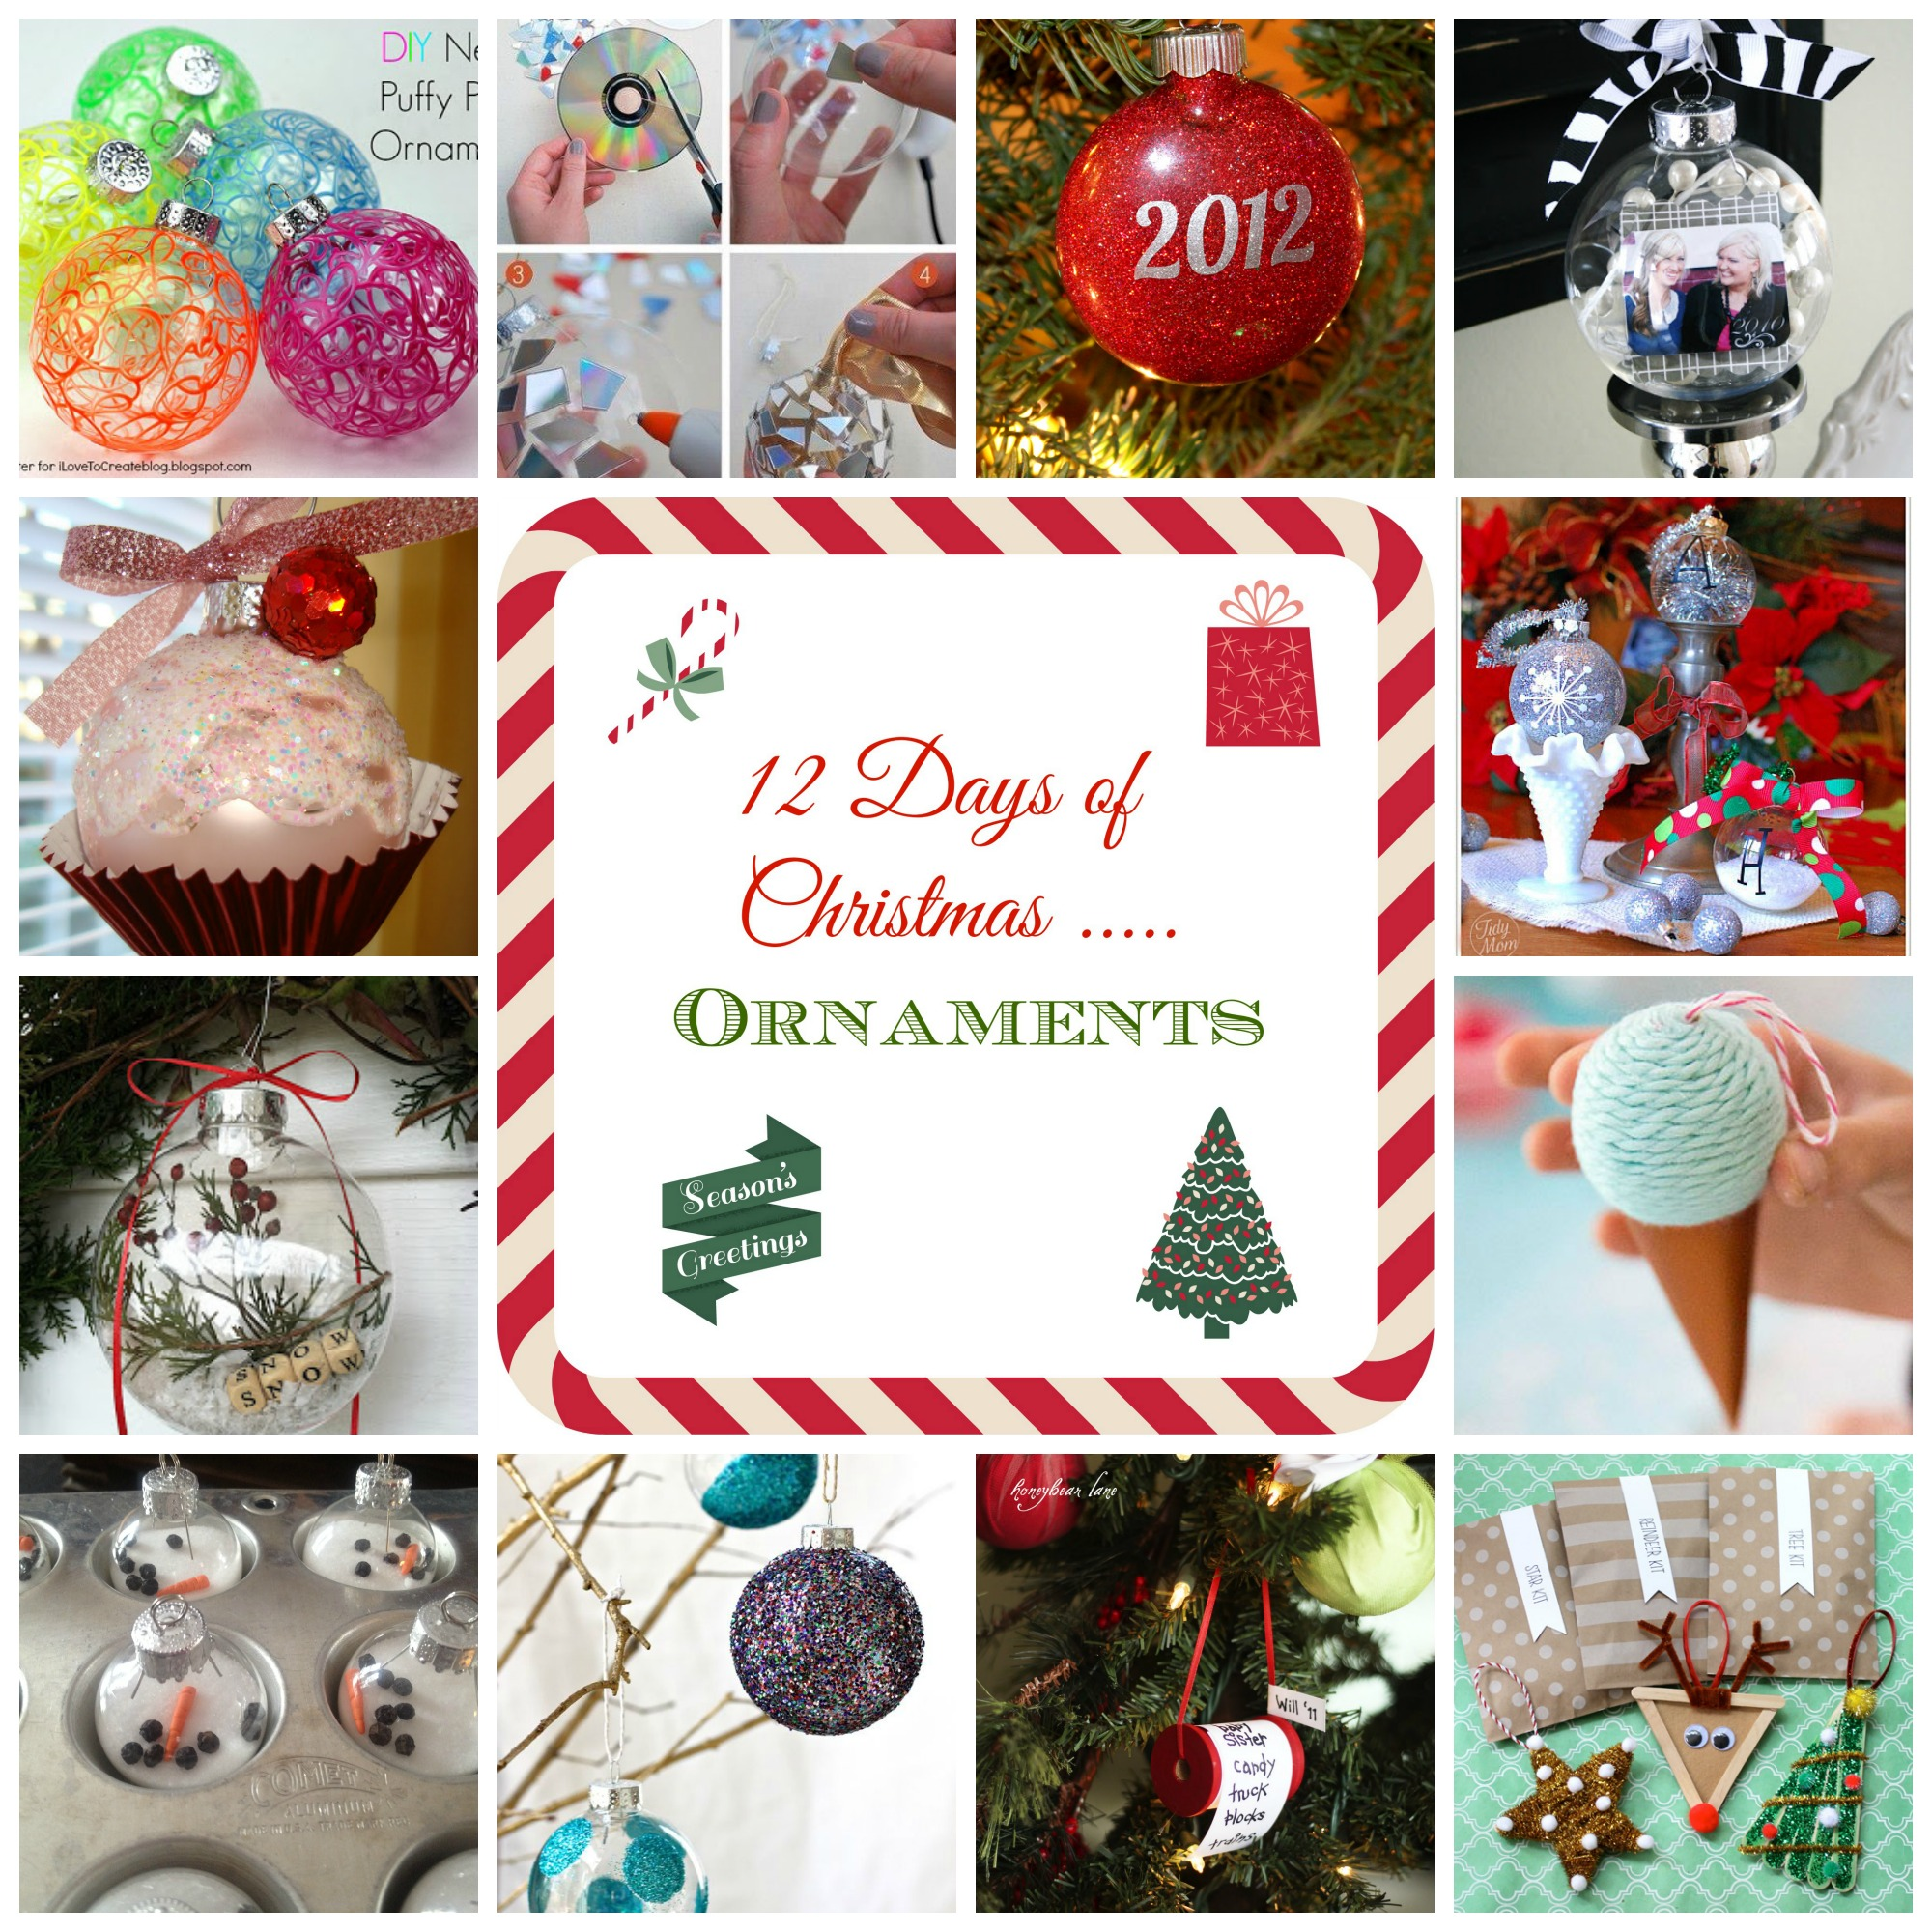 12 Days of Christmas - Ornaments